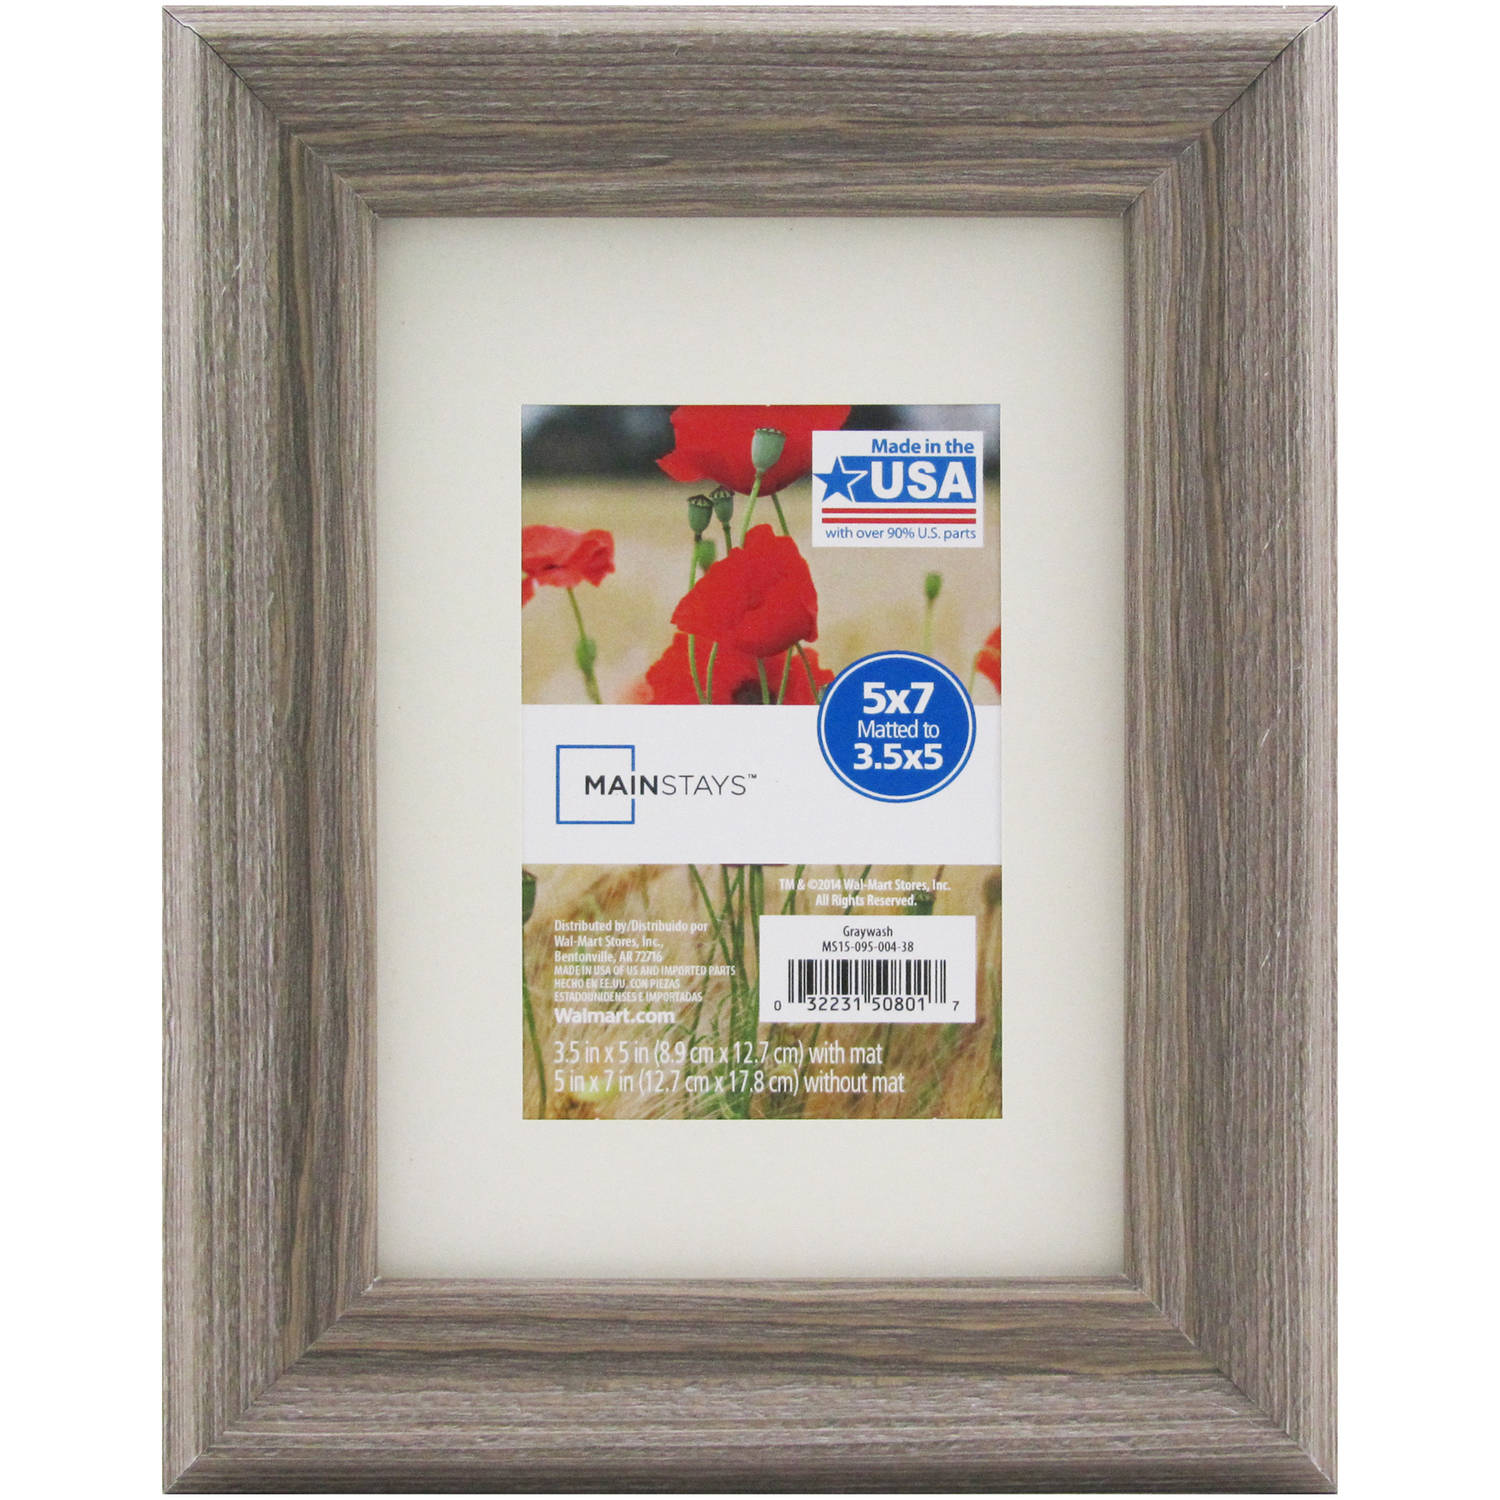 Mainstays 5x7 Matted To 35x5 Graywash Picture Frame Walmartcom